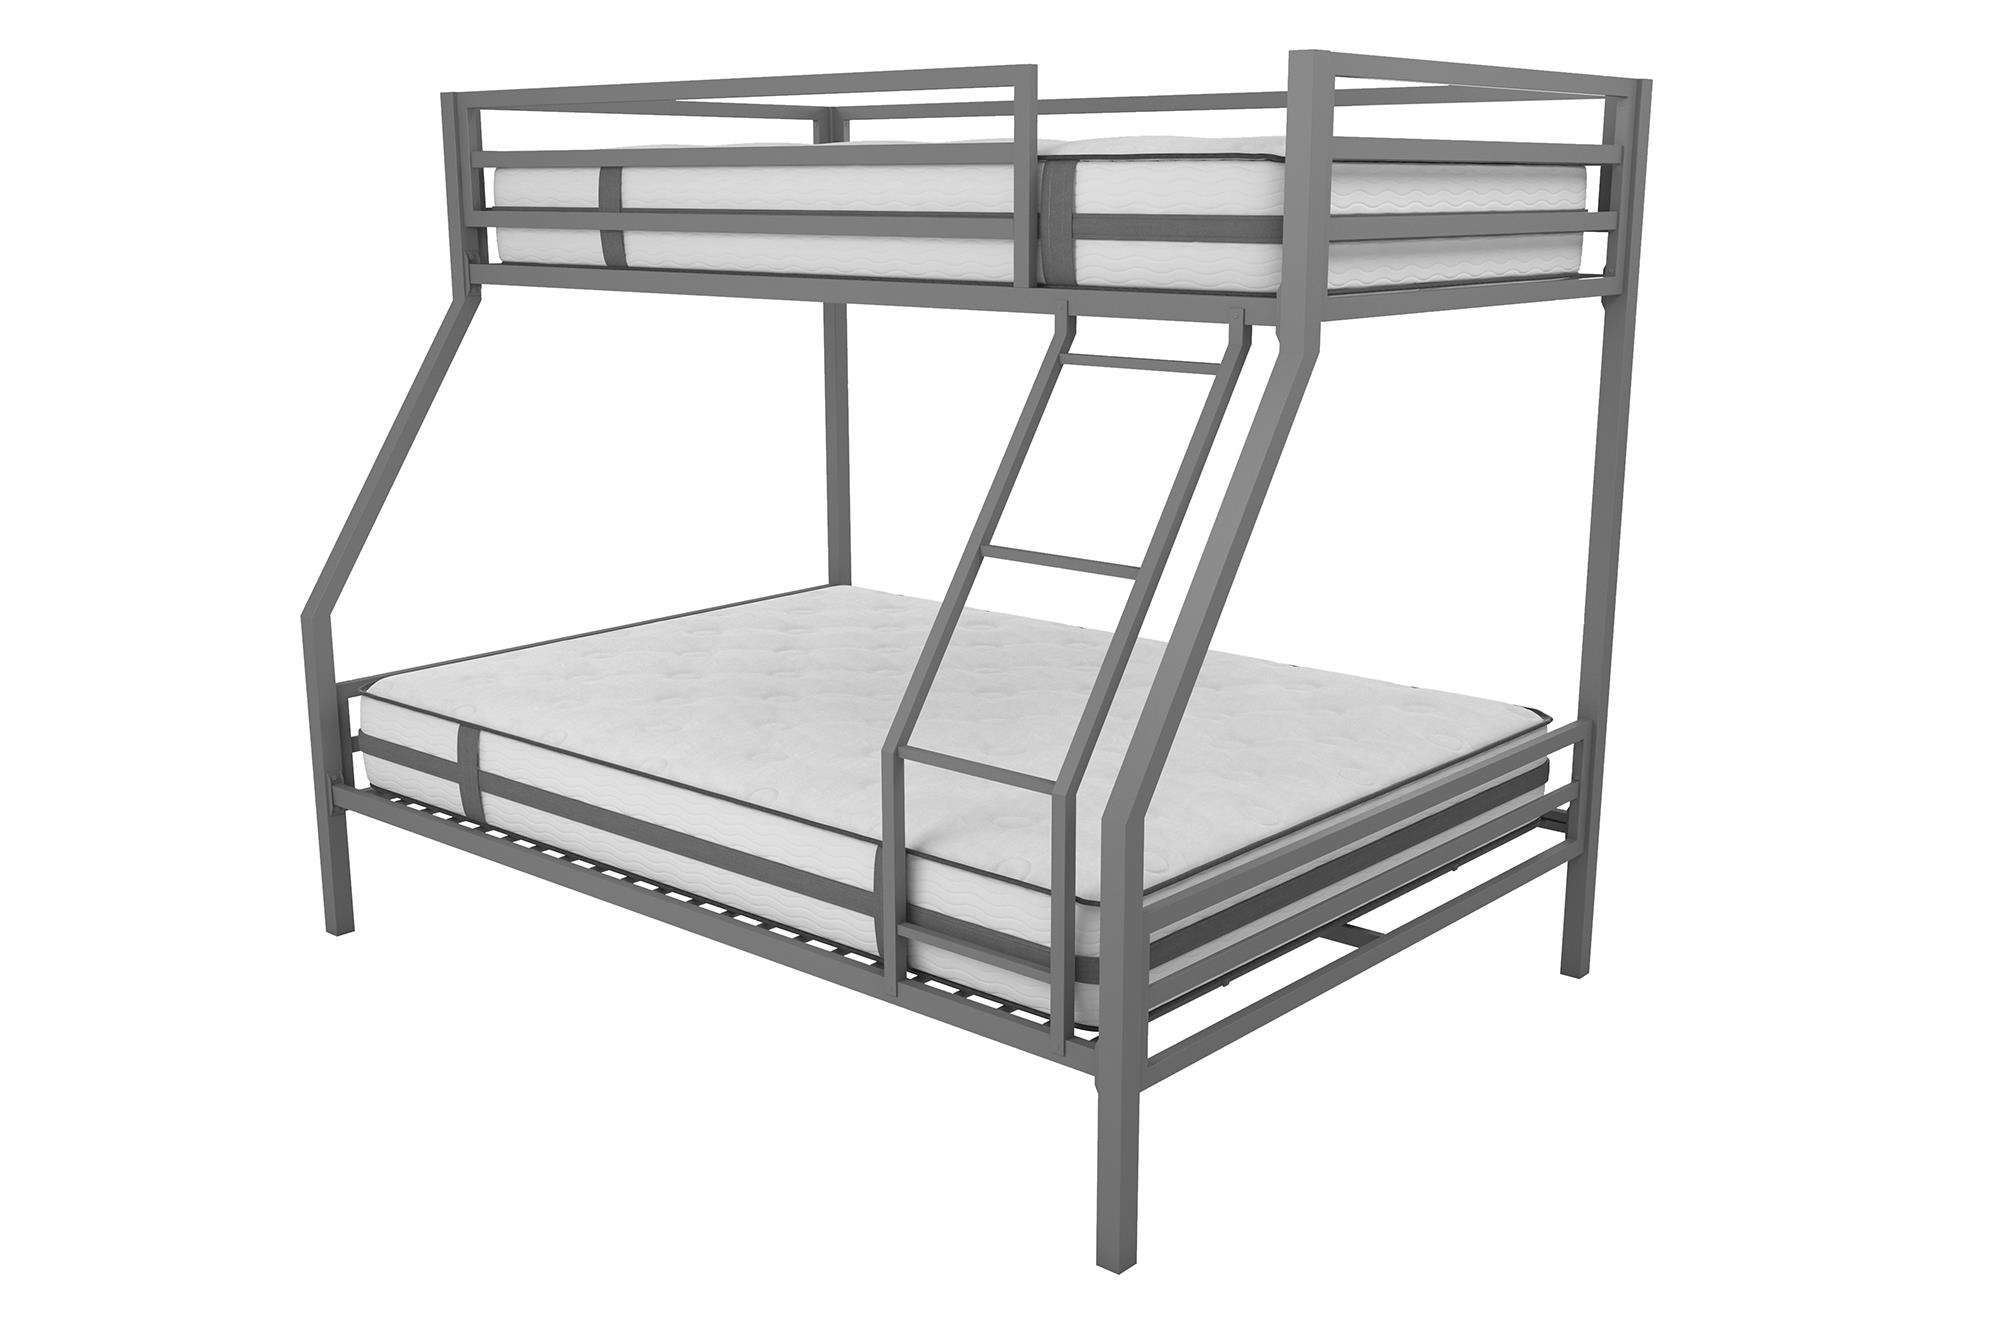 Metal Bunk Bed Assembly Instructions Pdf